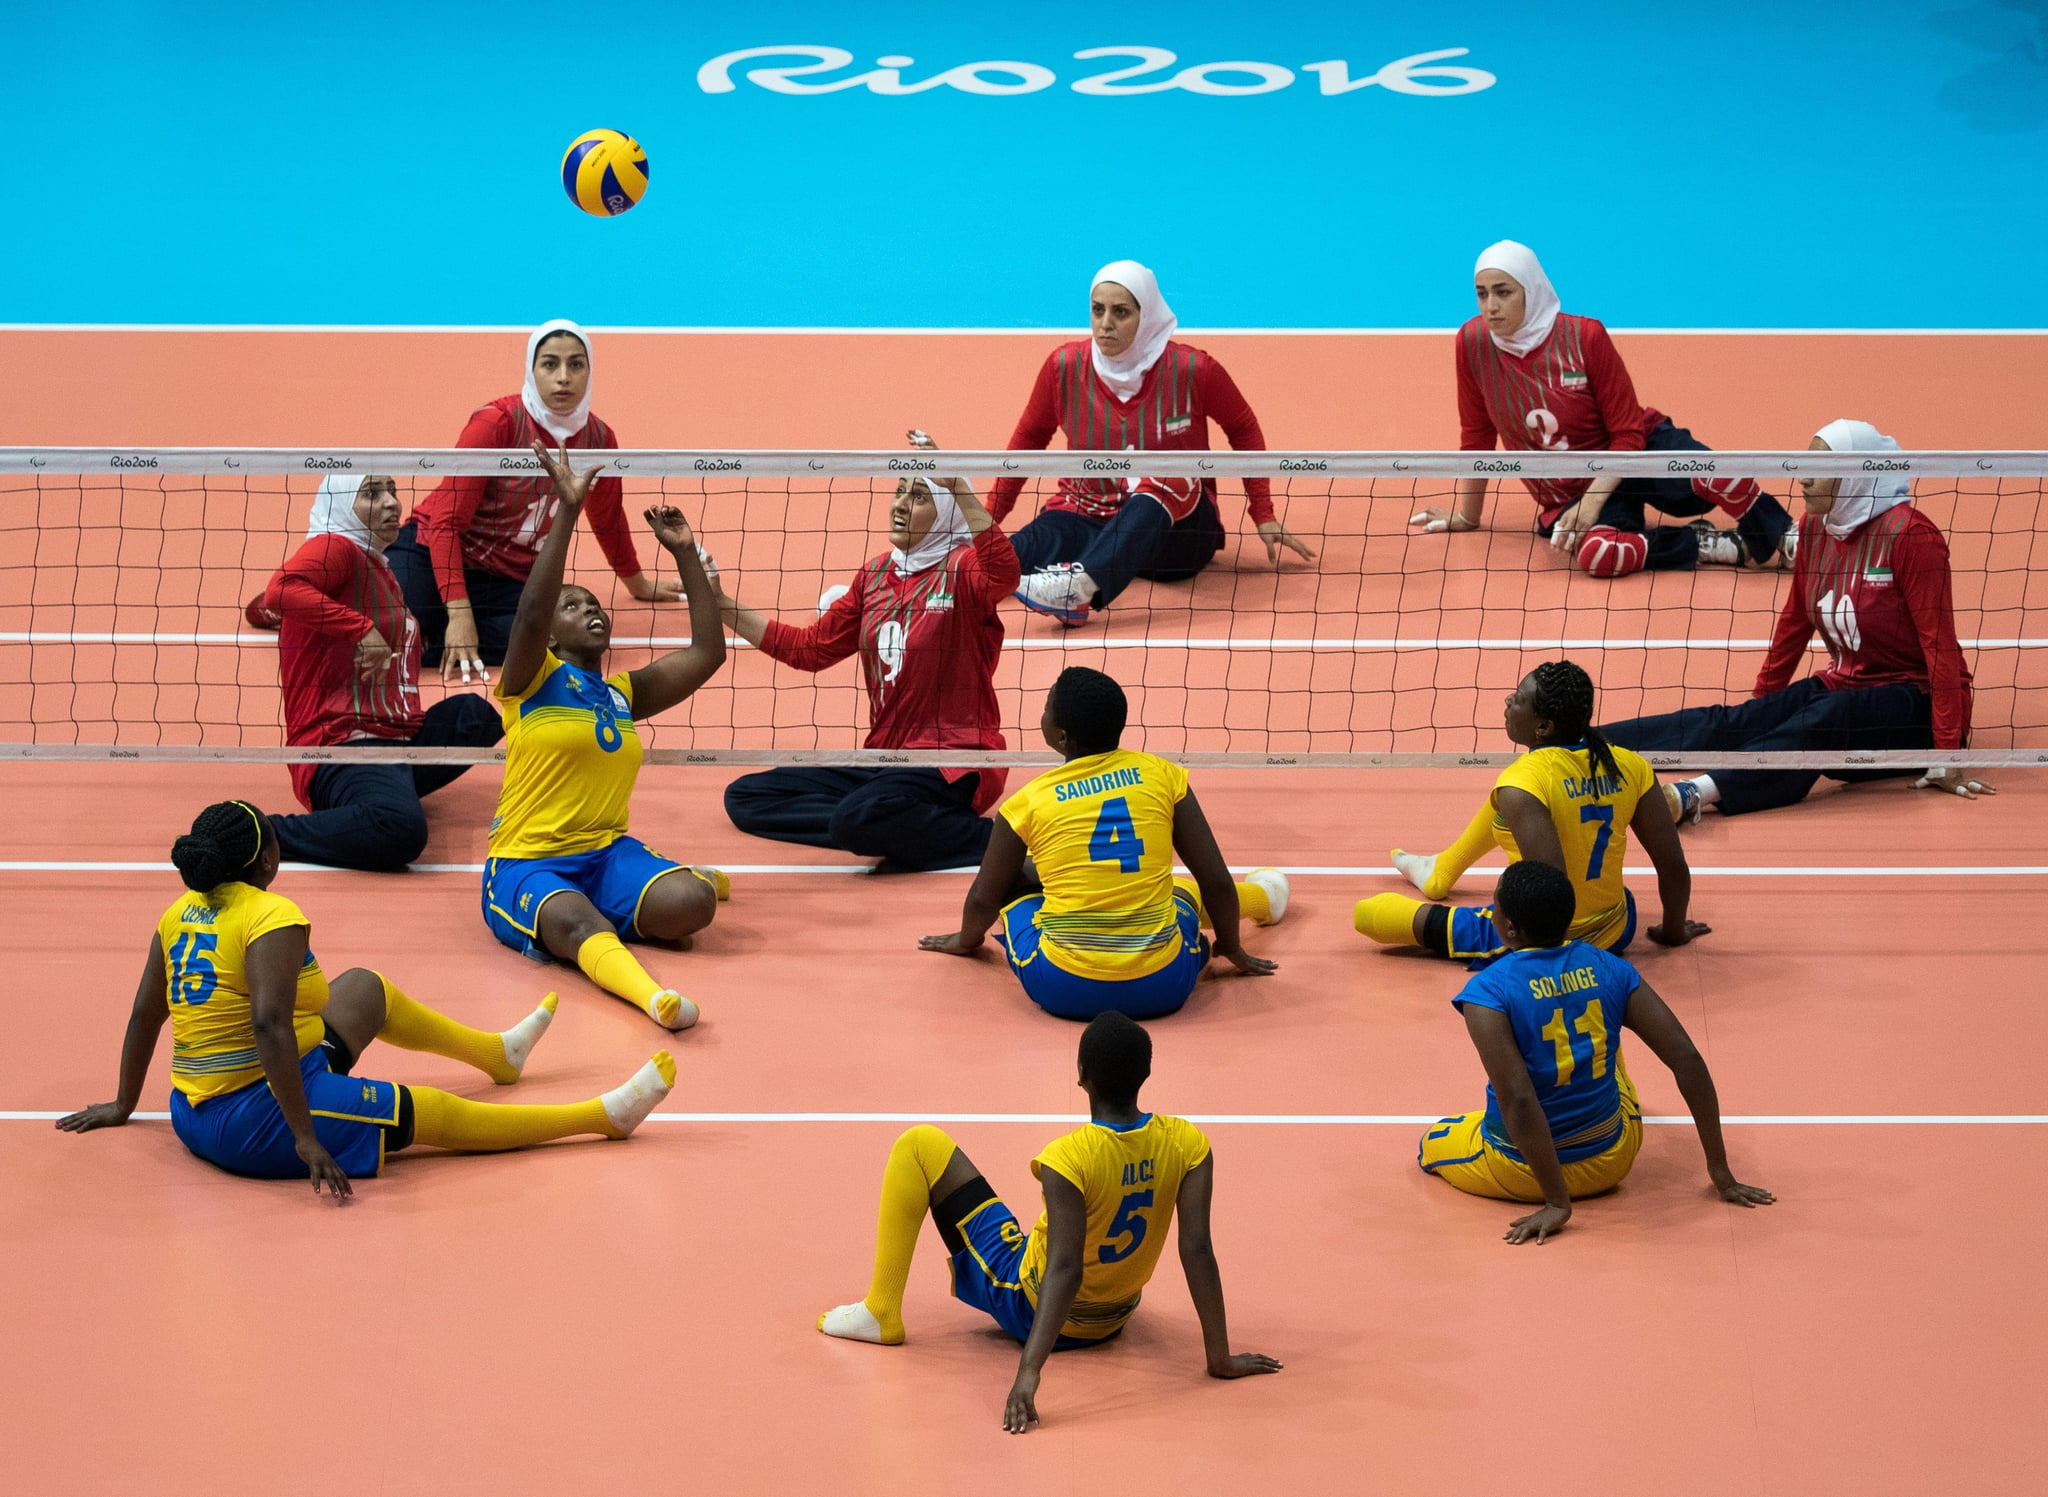 Rwanda (front) plays Iran in a Sitting Volleyball Women's Preliminaries Pool B Match for the Paralympic Games, in Rio de Janeiro, Brazil, on September 12, 2016. Photo By Simon Bruty or OIS/IOC via AFP.  RESTRICTED TO EDITORIAL USE.    / AFP / OIS/IOC / Simon Bruty for OIS/IOC        (Photo credit should read SIMON BRUTY FOR OIS/IOC/AFP via Getty Images)